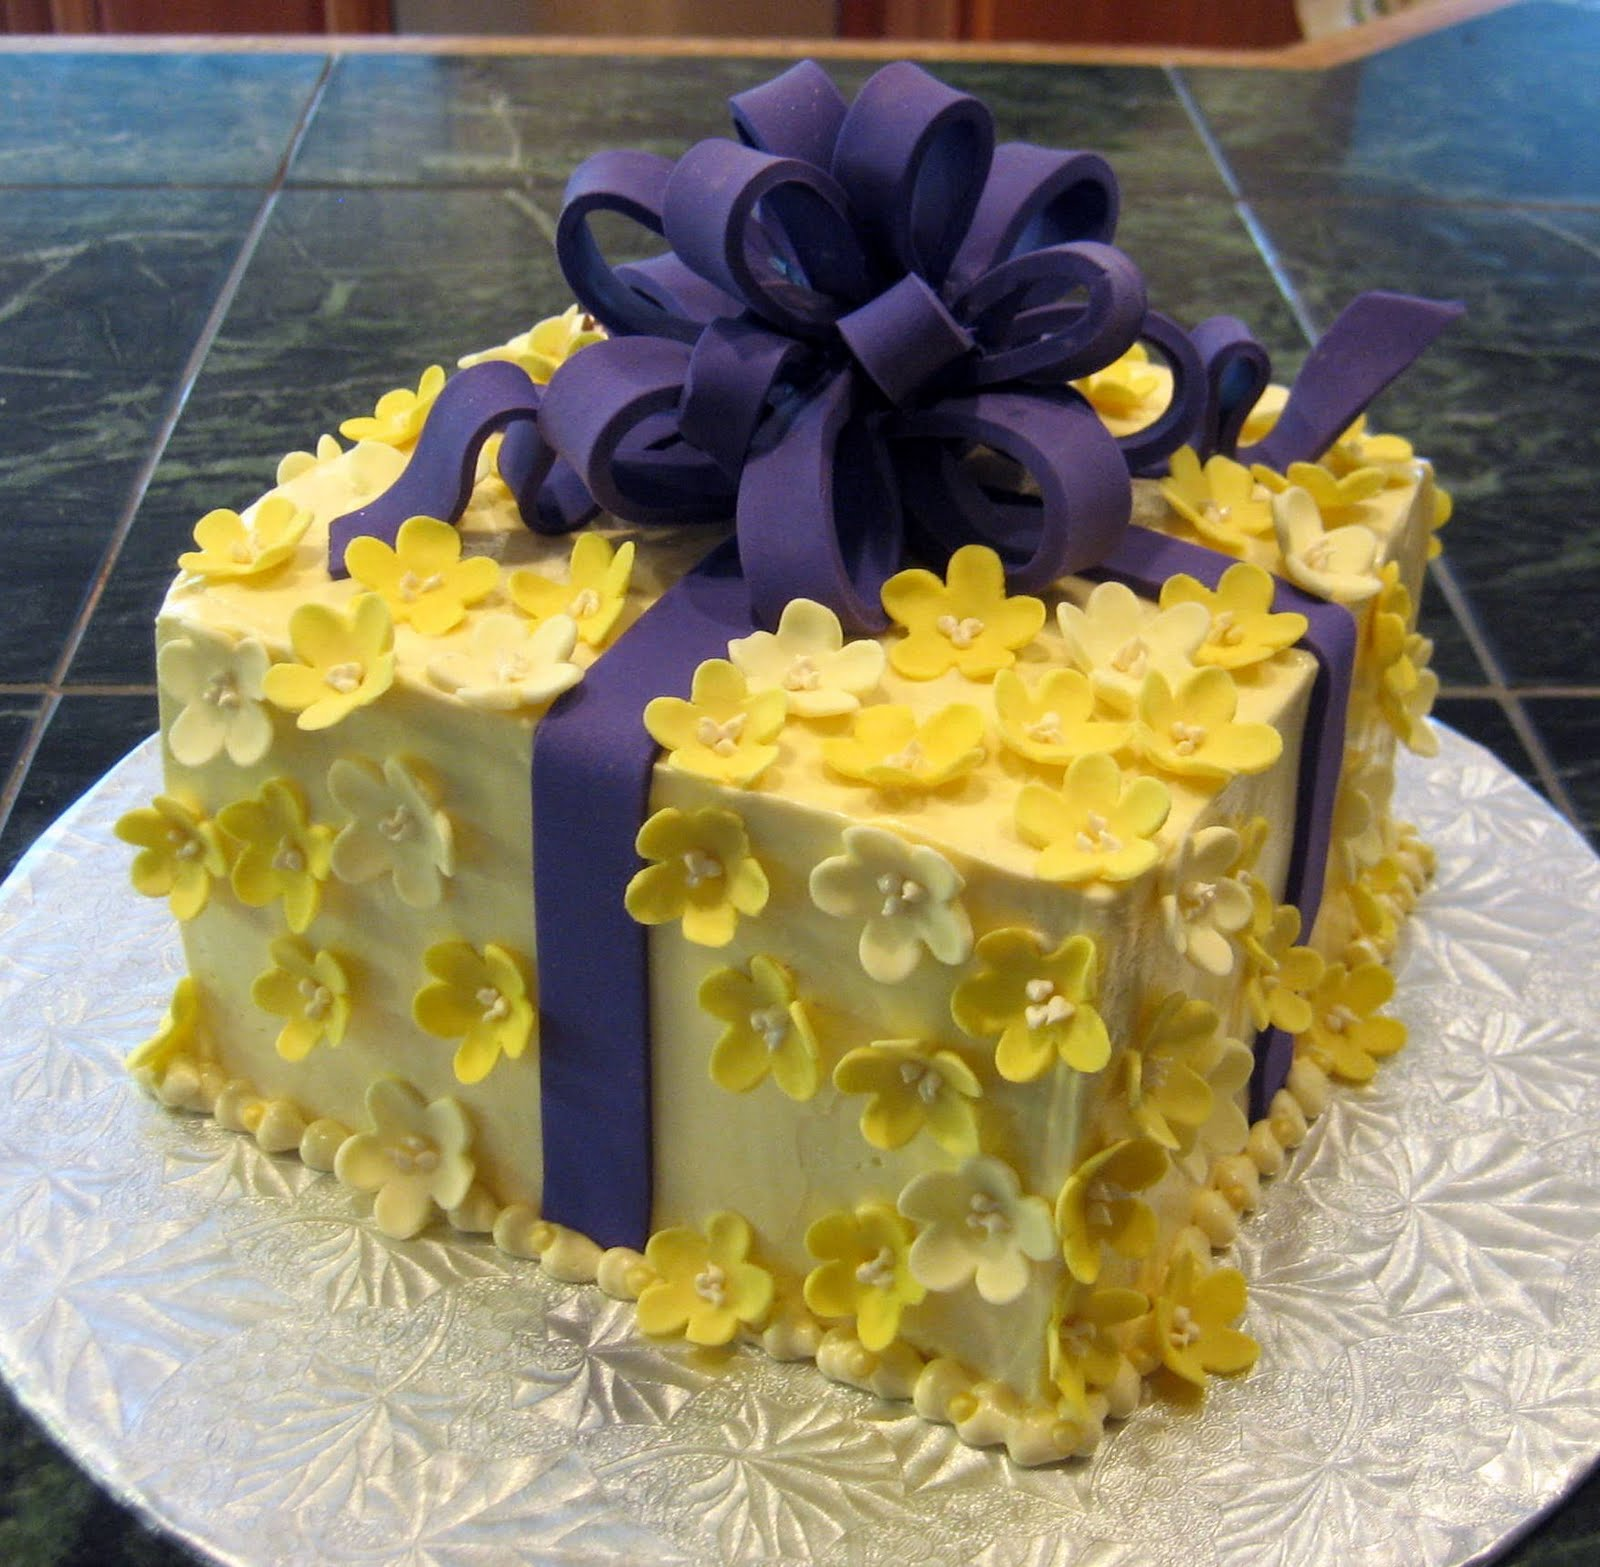 Jillicious Discoveries: Surprise Birthday Gift Cake (And